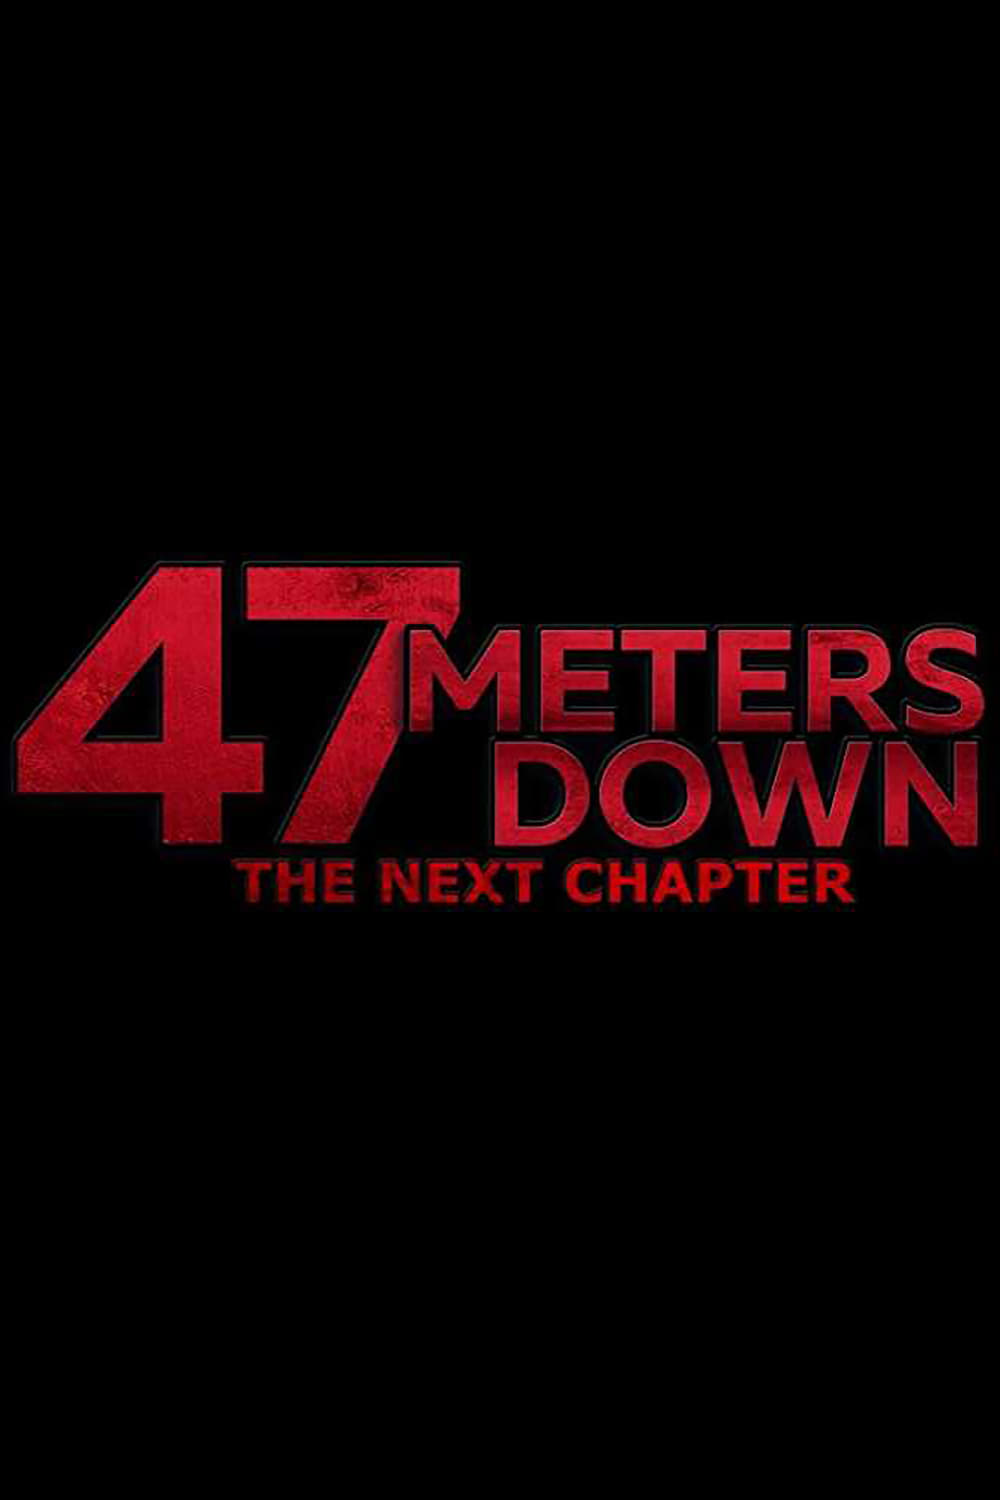 47 Meters Down: The Next Chapter (2019)